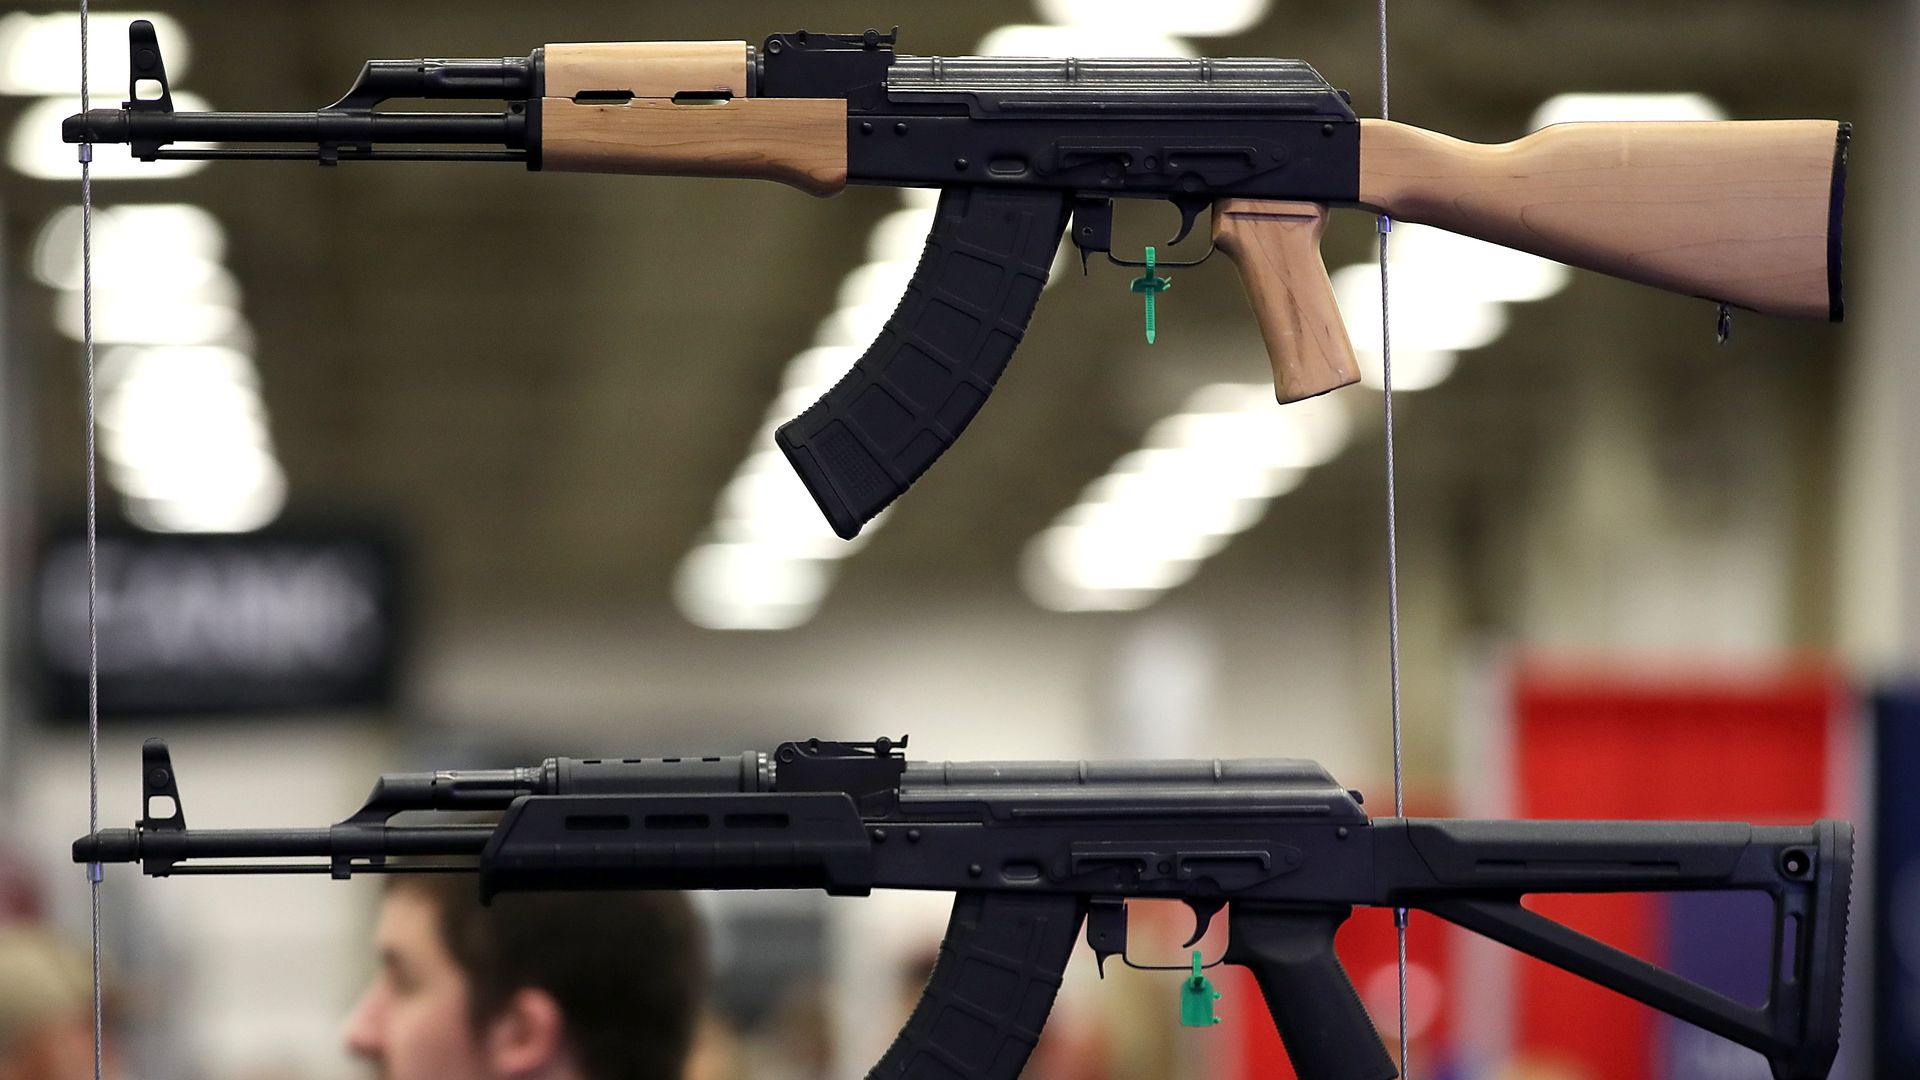 Firearms on display during the NRA Annual Meeting & Exhibits at the Kay Bailey Hutchison Convention Center  in Dallas, Texas. Photo: Justin Sullivan/Getty Images